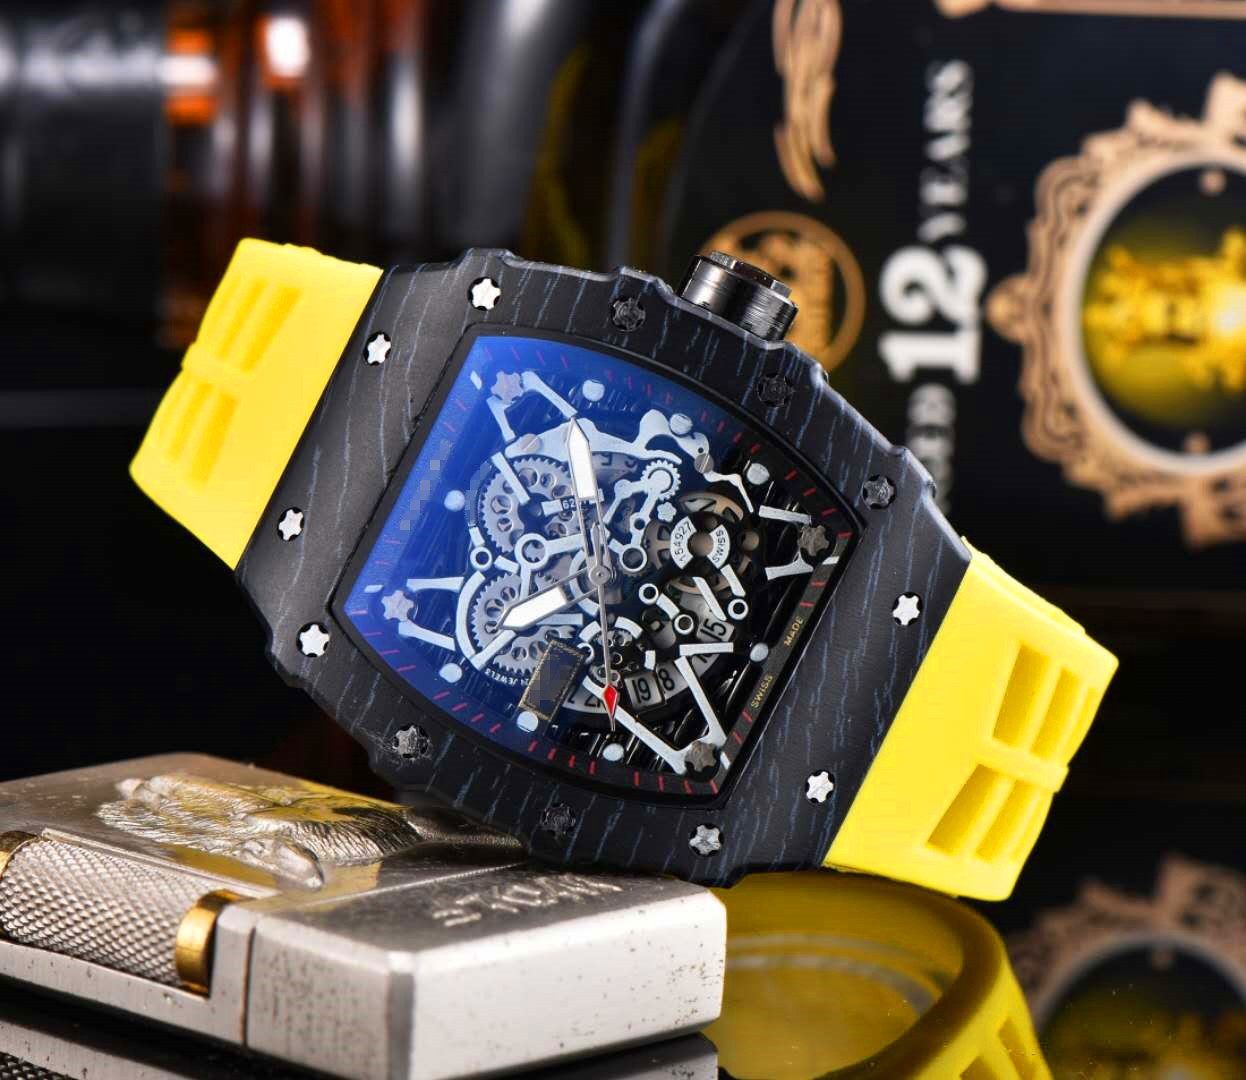 RM Richard Luxury Quartz Watches New Top Brand Mille Mens Automatic Watch Men's Designer Wristwacth Water Resistant Reloj Hombre